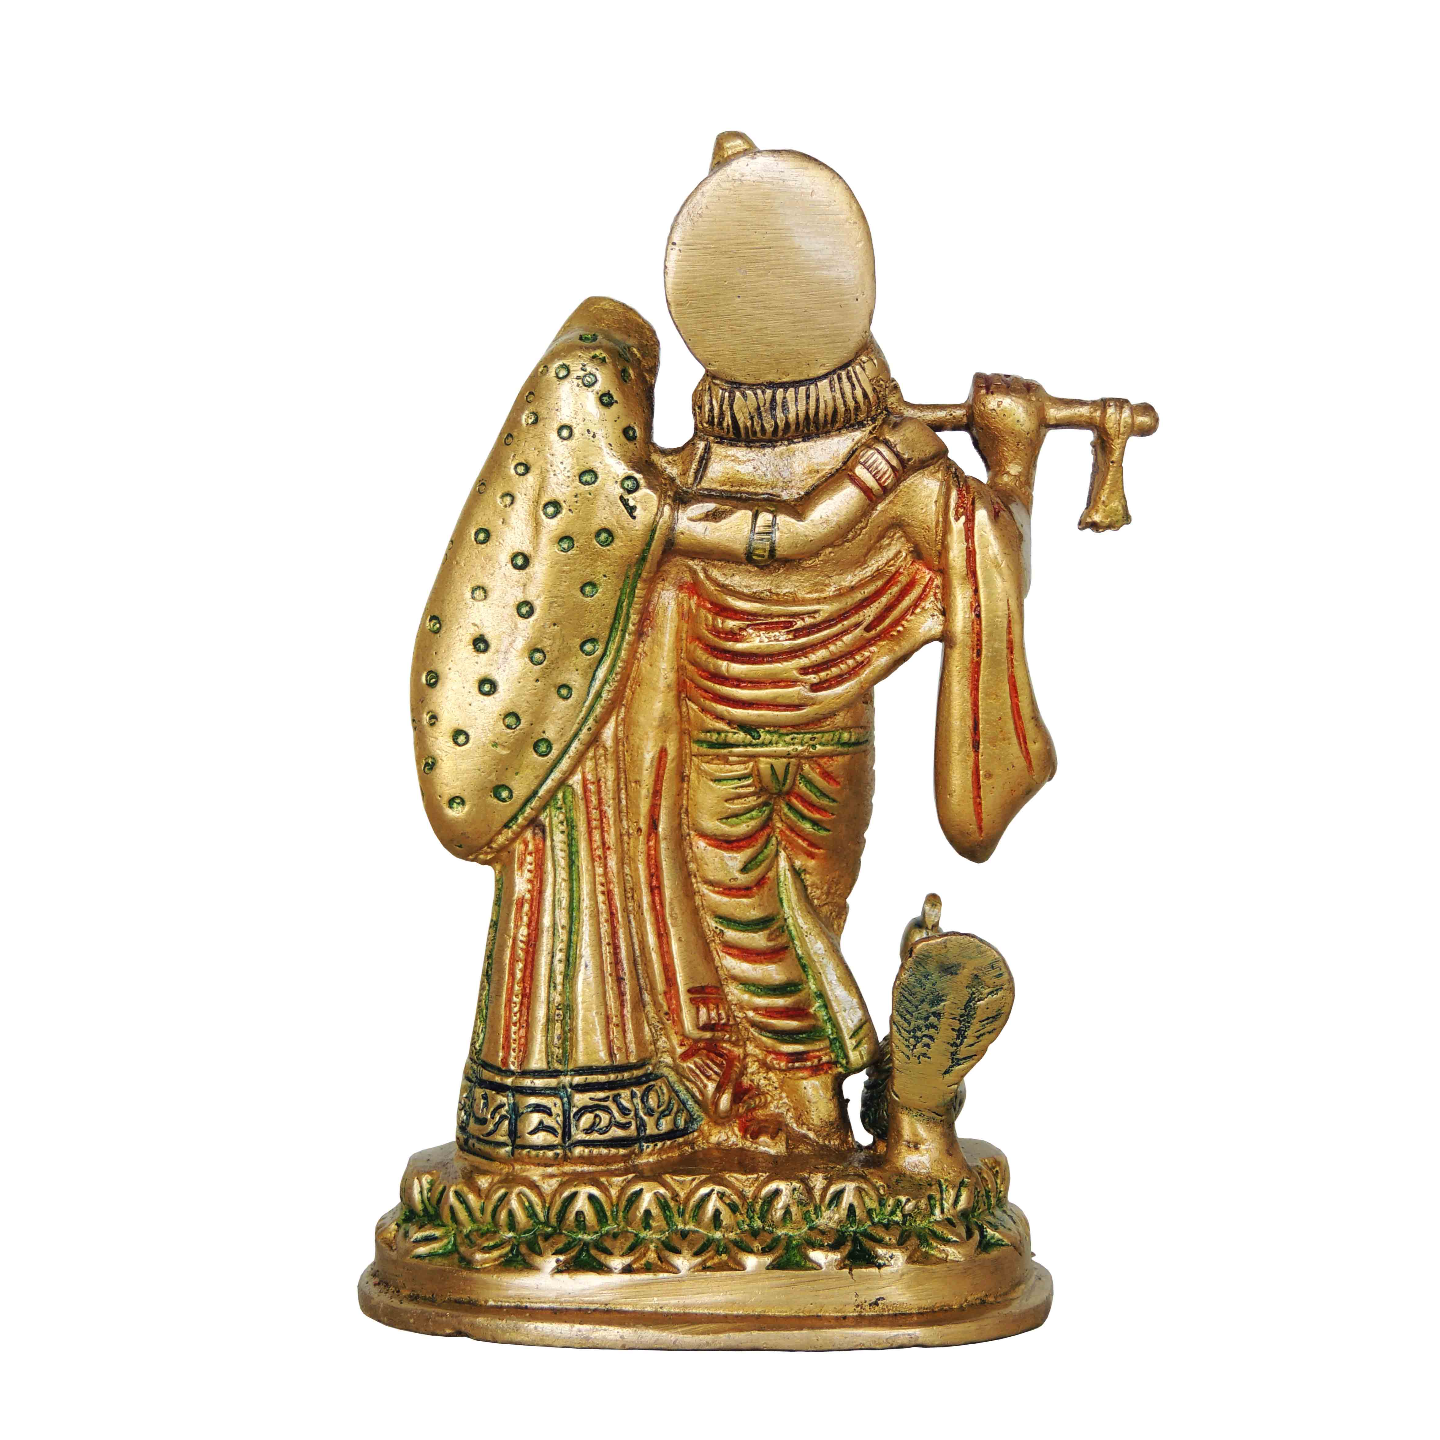 Brass Radha Krishna Statue Murti In Multicolour Lacquer Finish - 6 Inch  (BS399 G)